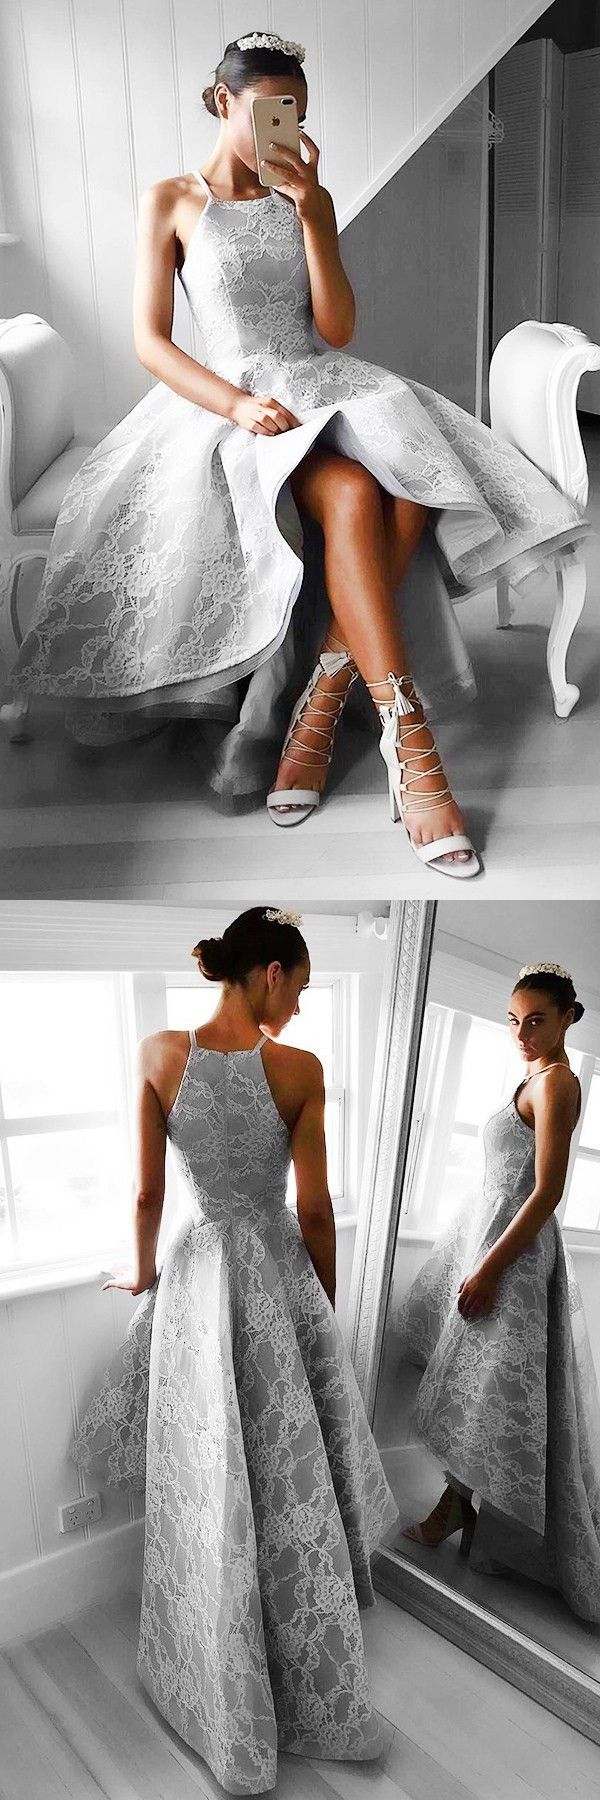 prom dresses, chic hi lo party dresses, grey lace evening gowns, sleeveless prom dresses 2017